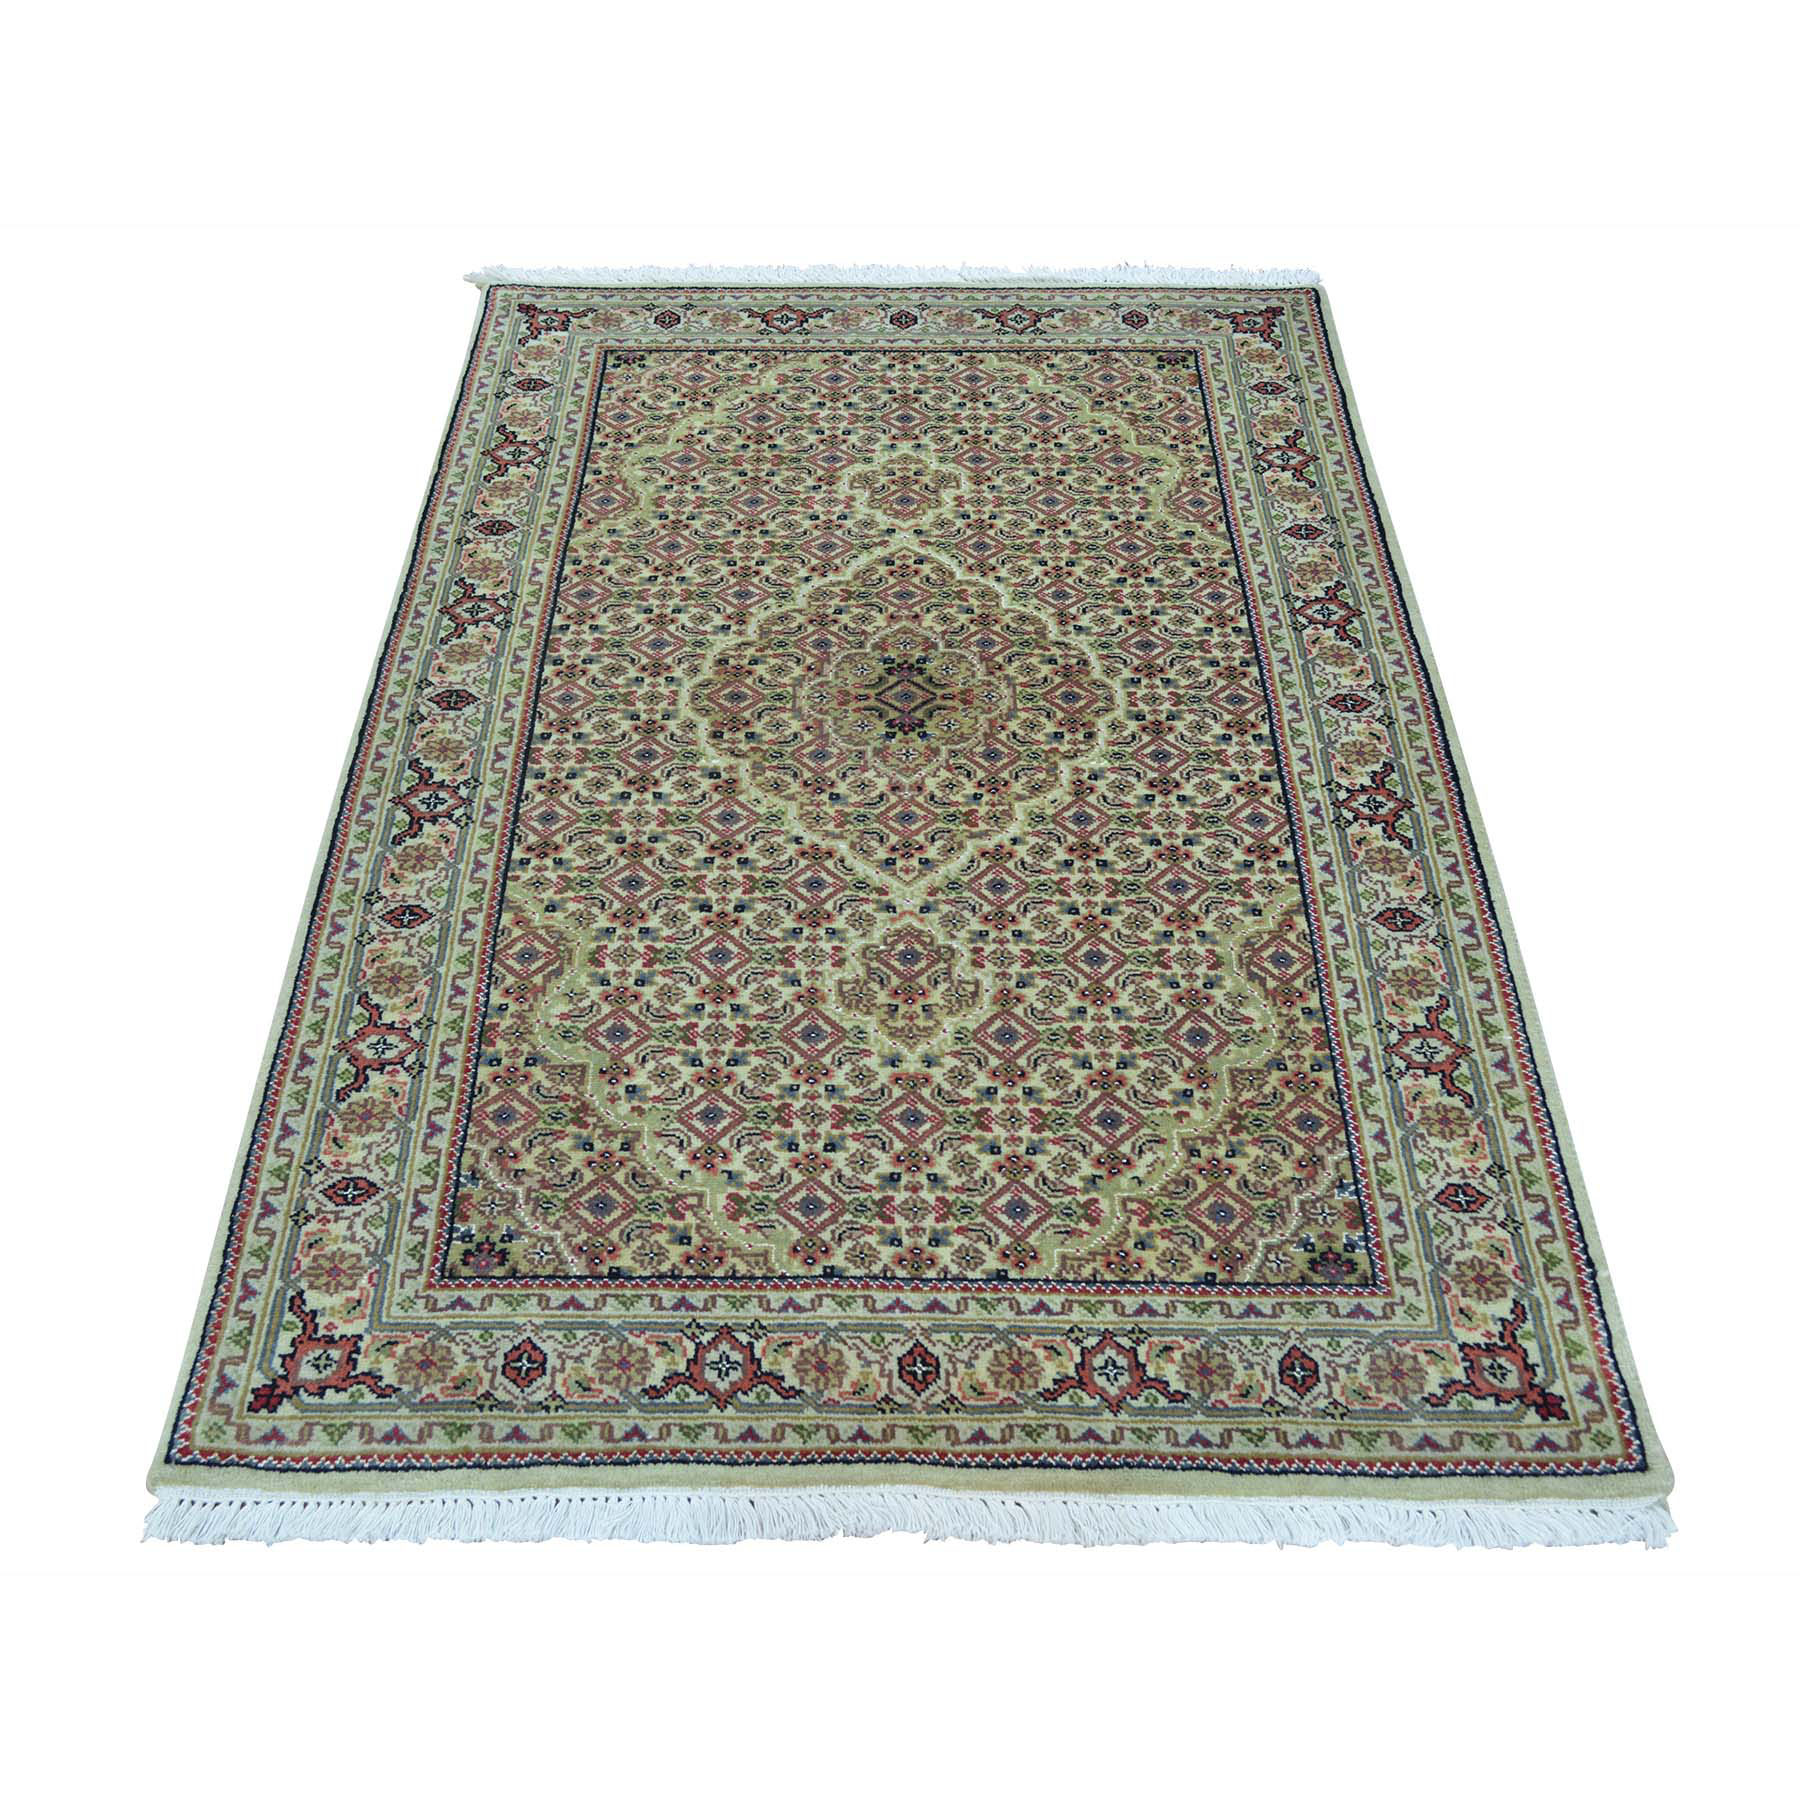 Pirniakan Collection Hand Knotted Ivory Rug No: 153130